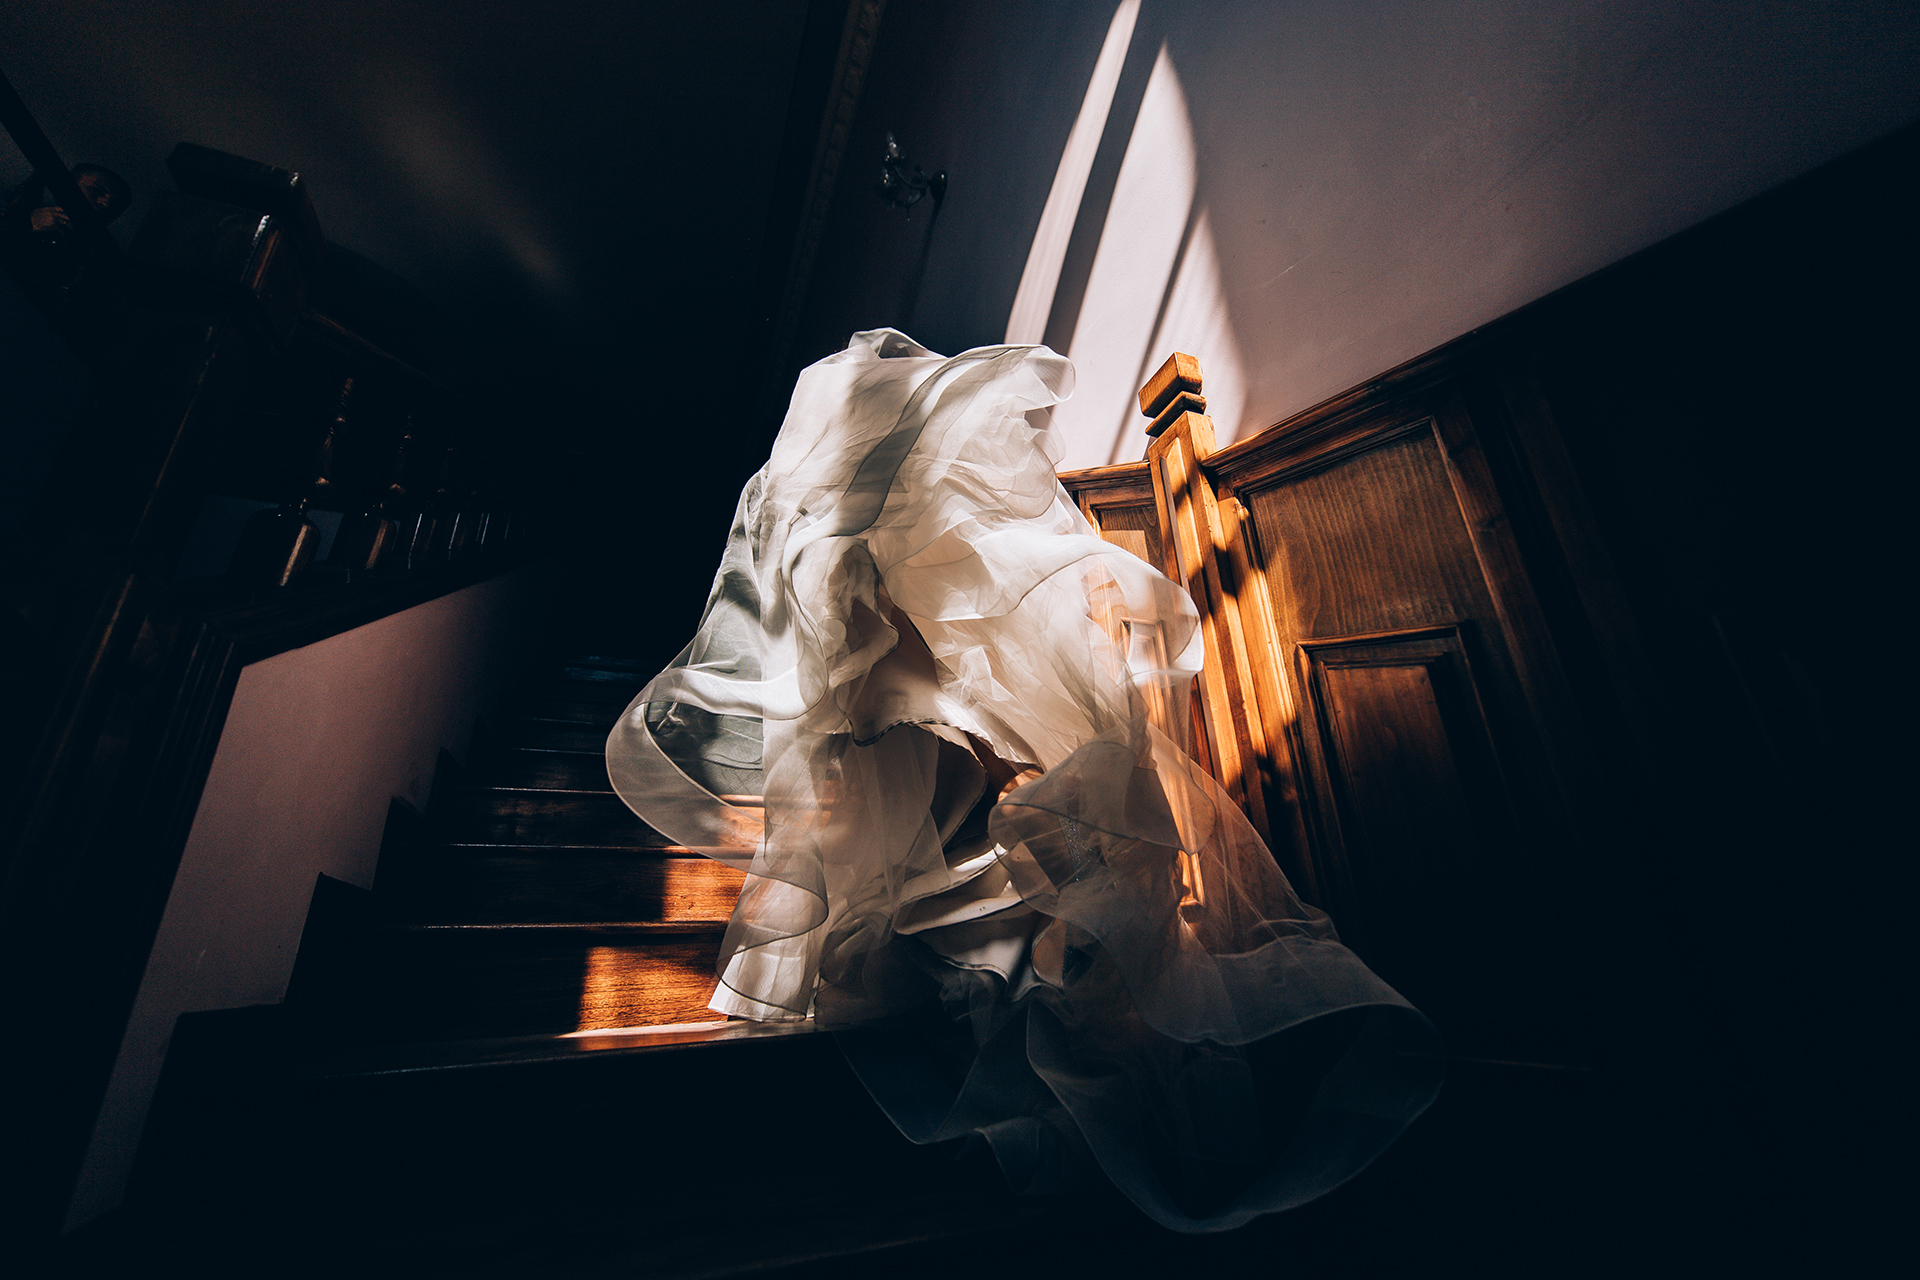 Ruse Wedding Photos | The bride poses for an artistic portrait on the staircase